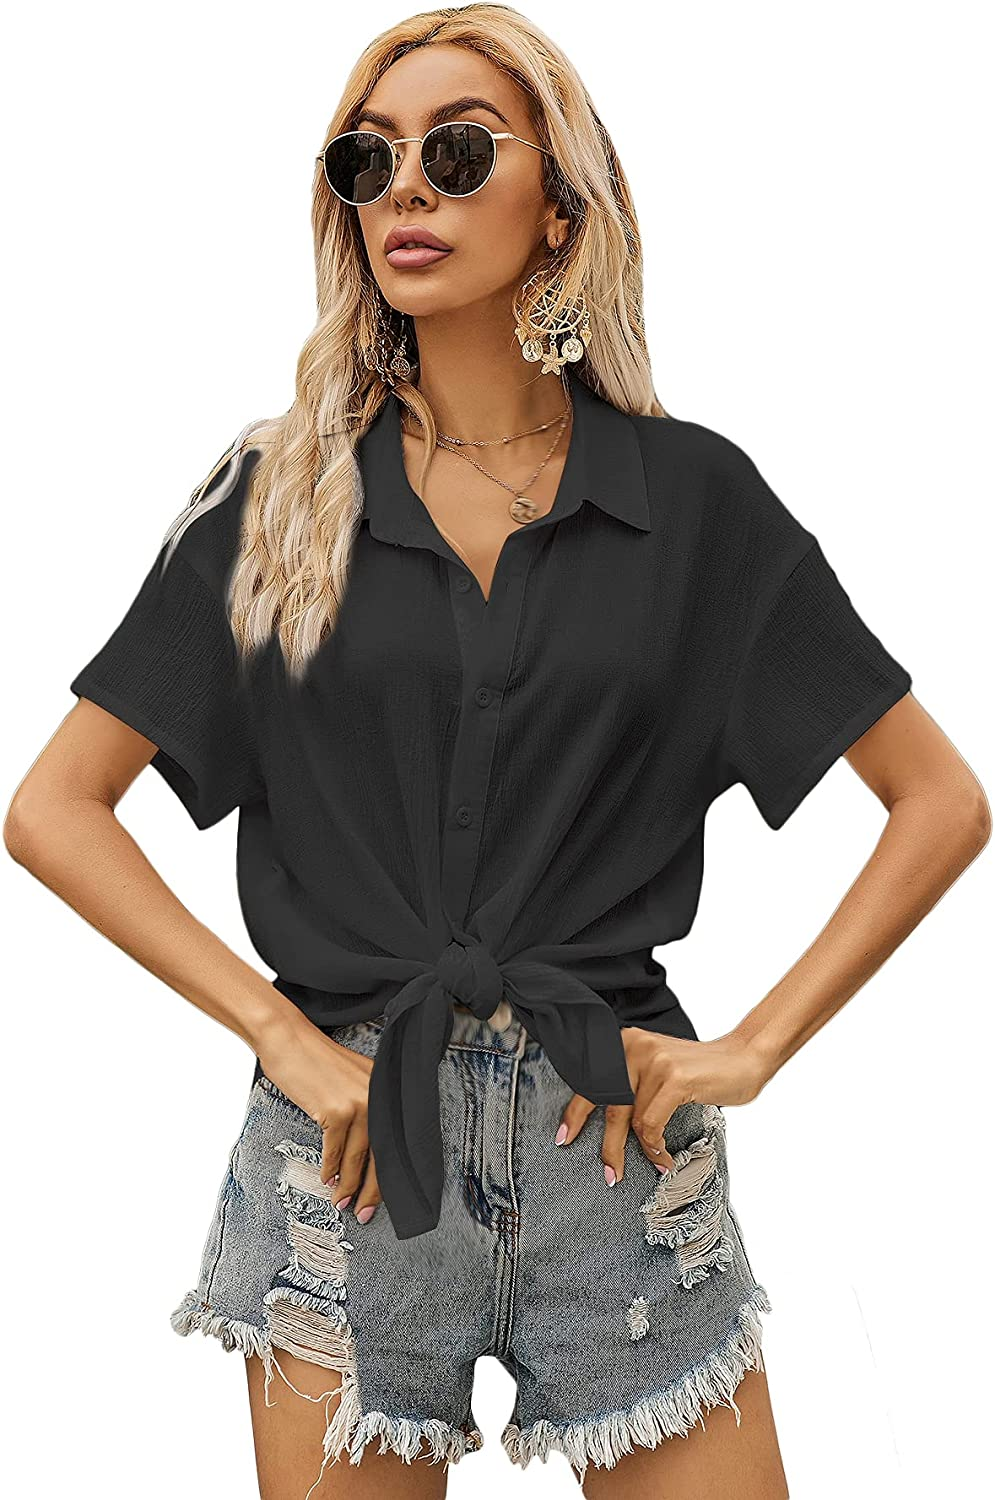 Milumia Women's Blouse Short Sleeve V Neck Button Down T Shirts Front Knot Casual Tops